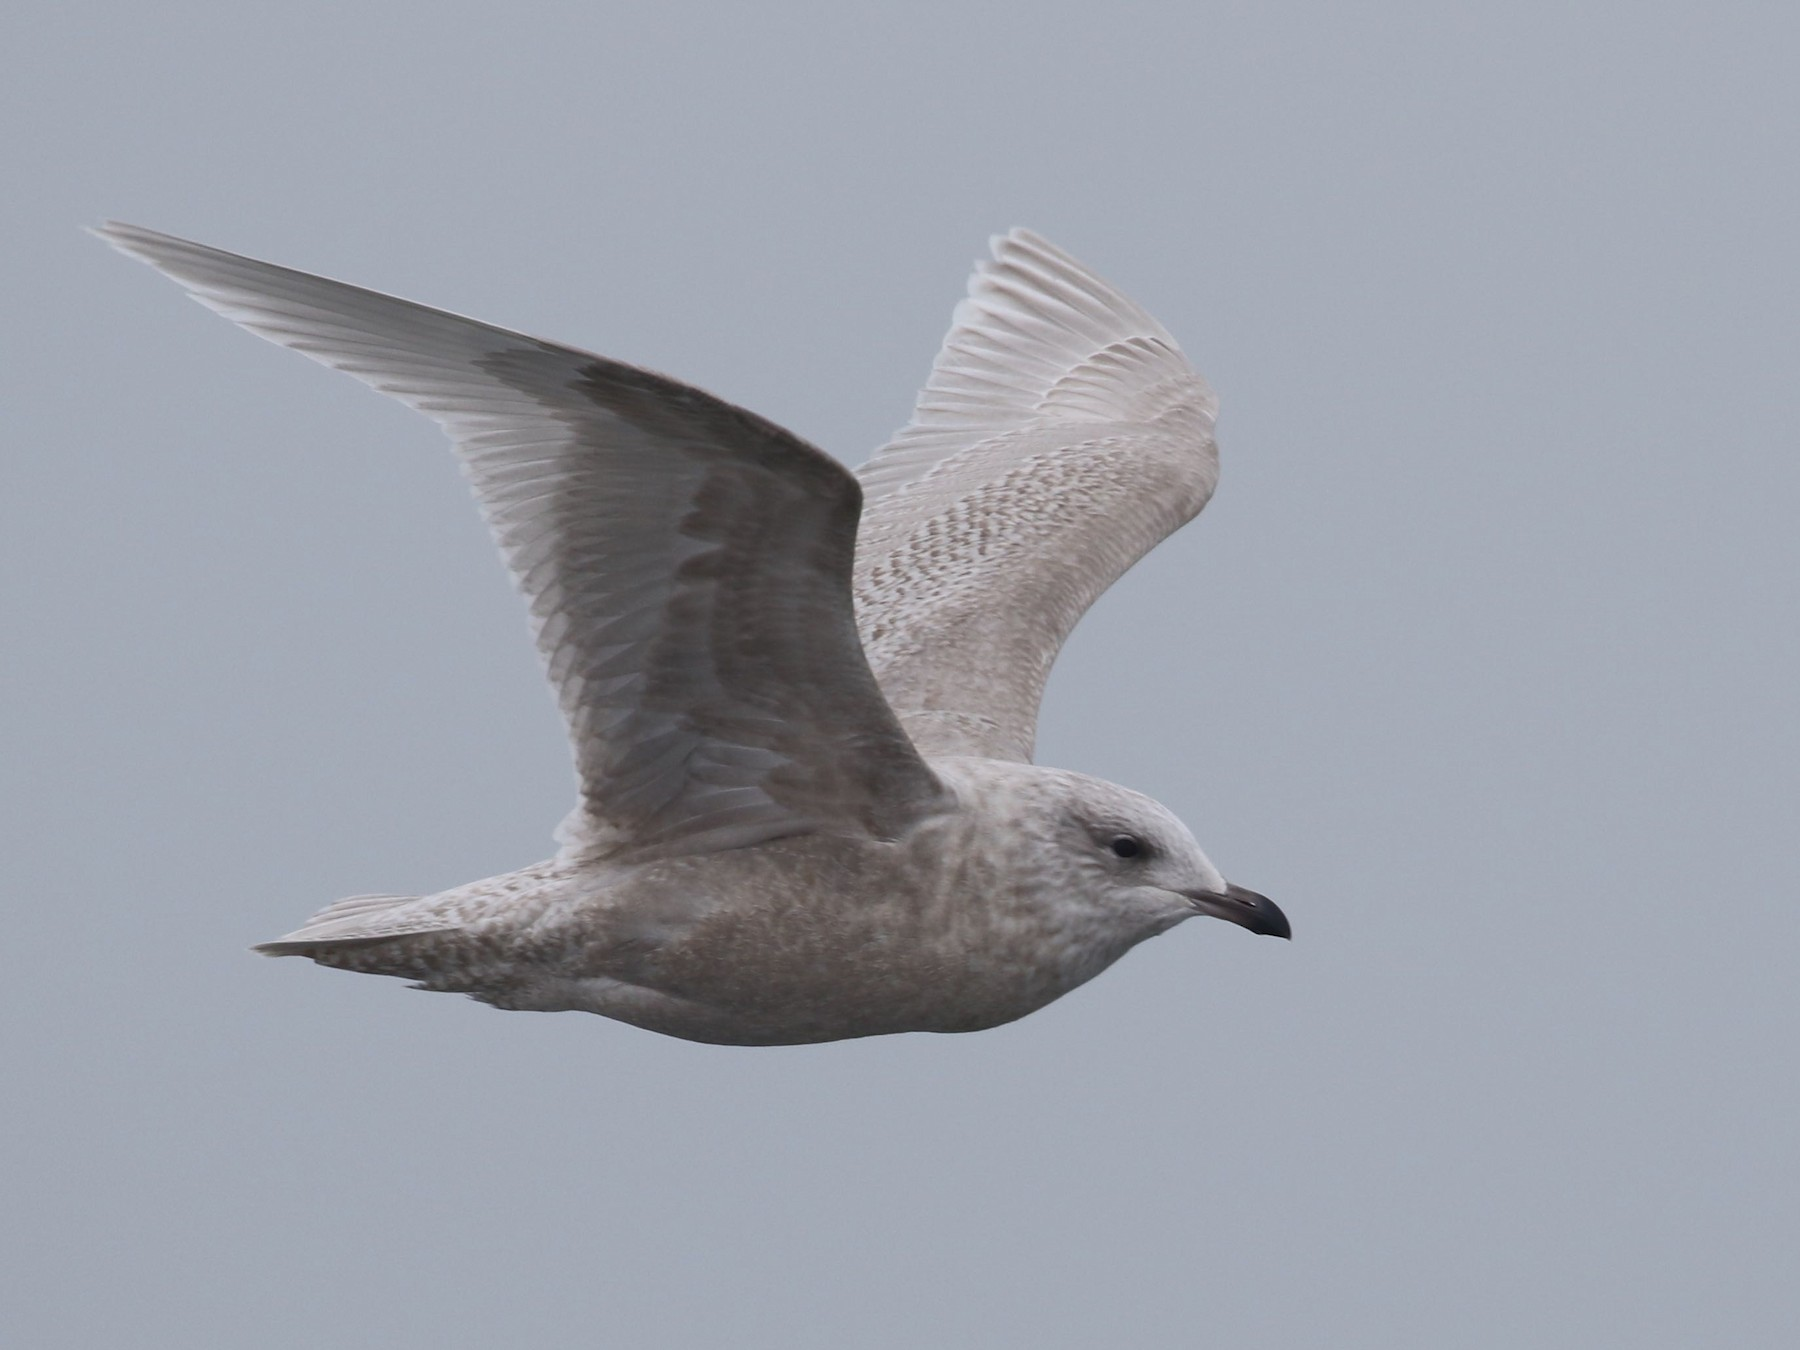 Iceland Gull - Alvan Buckley